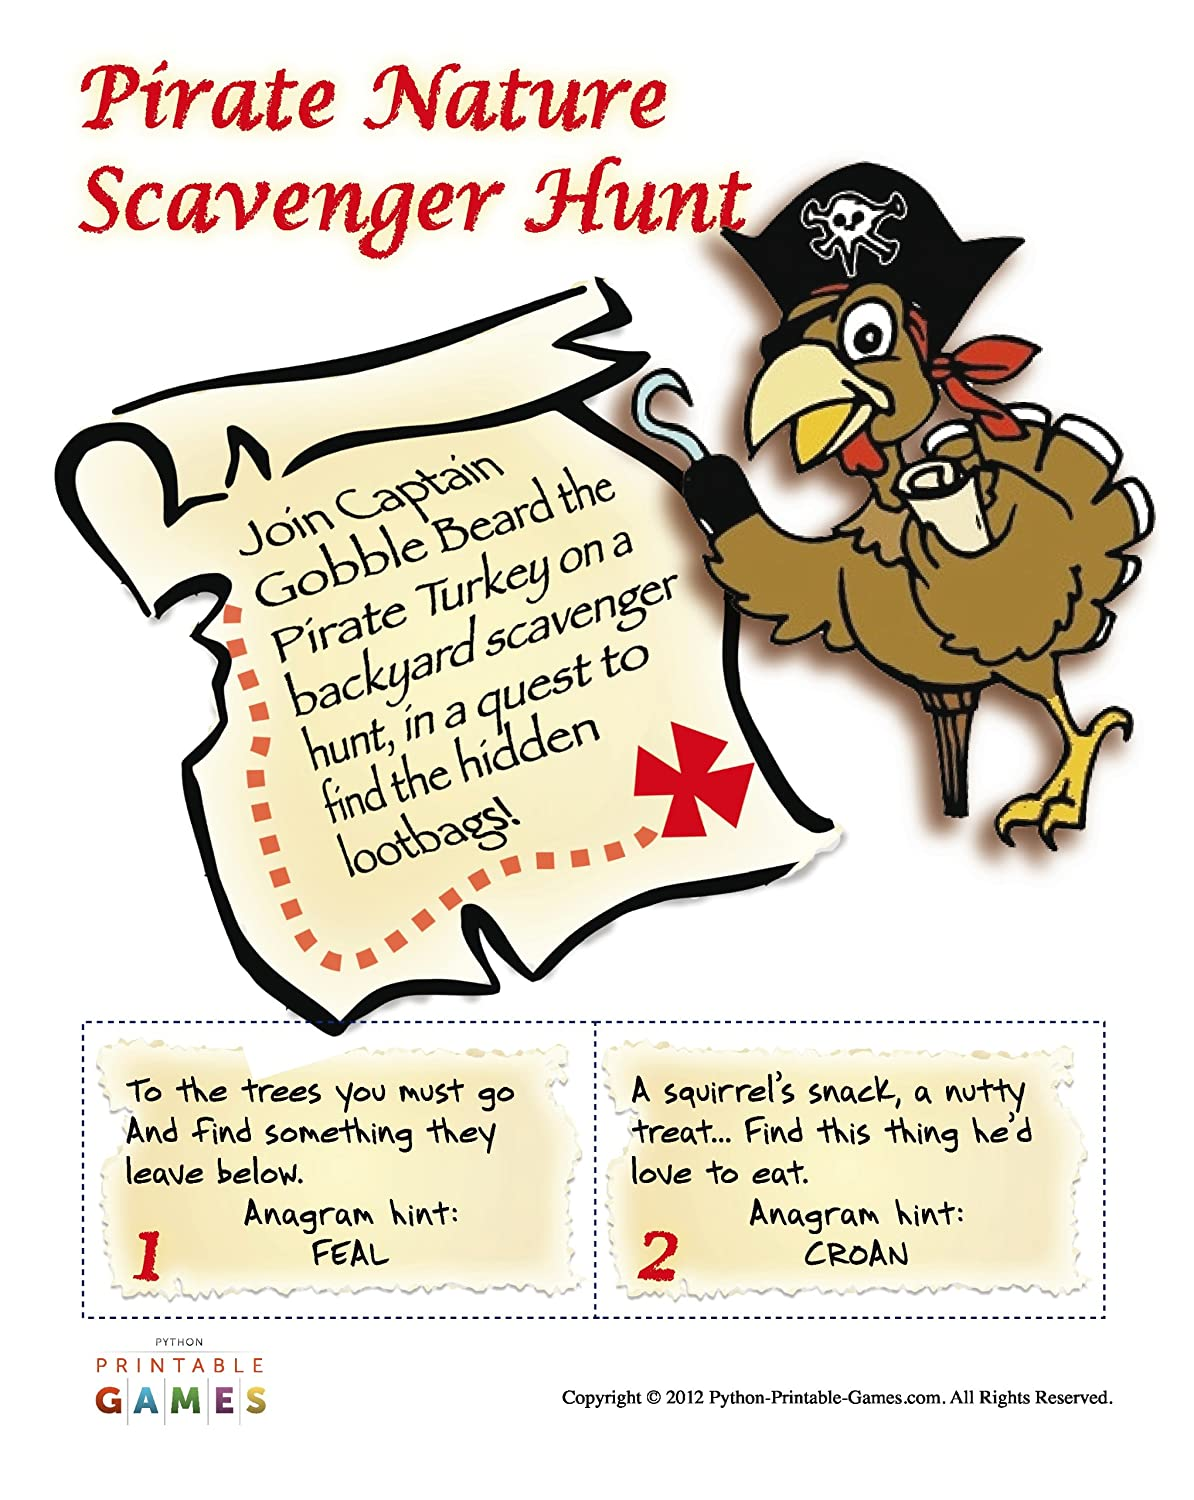 picture relating to Nature Scavenger Hunt Printable called : Character Scavenger Hunt Printable Pirate Occasion